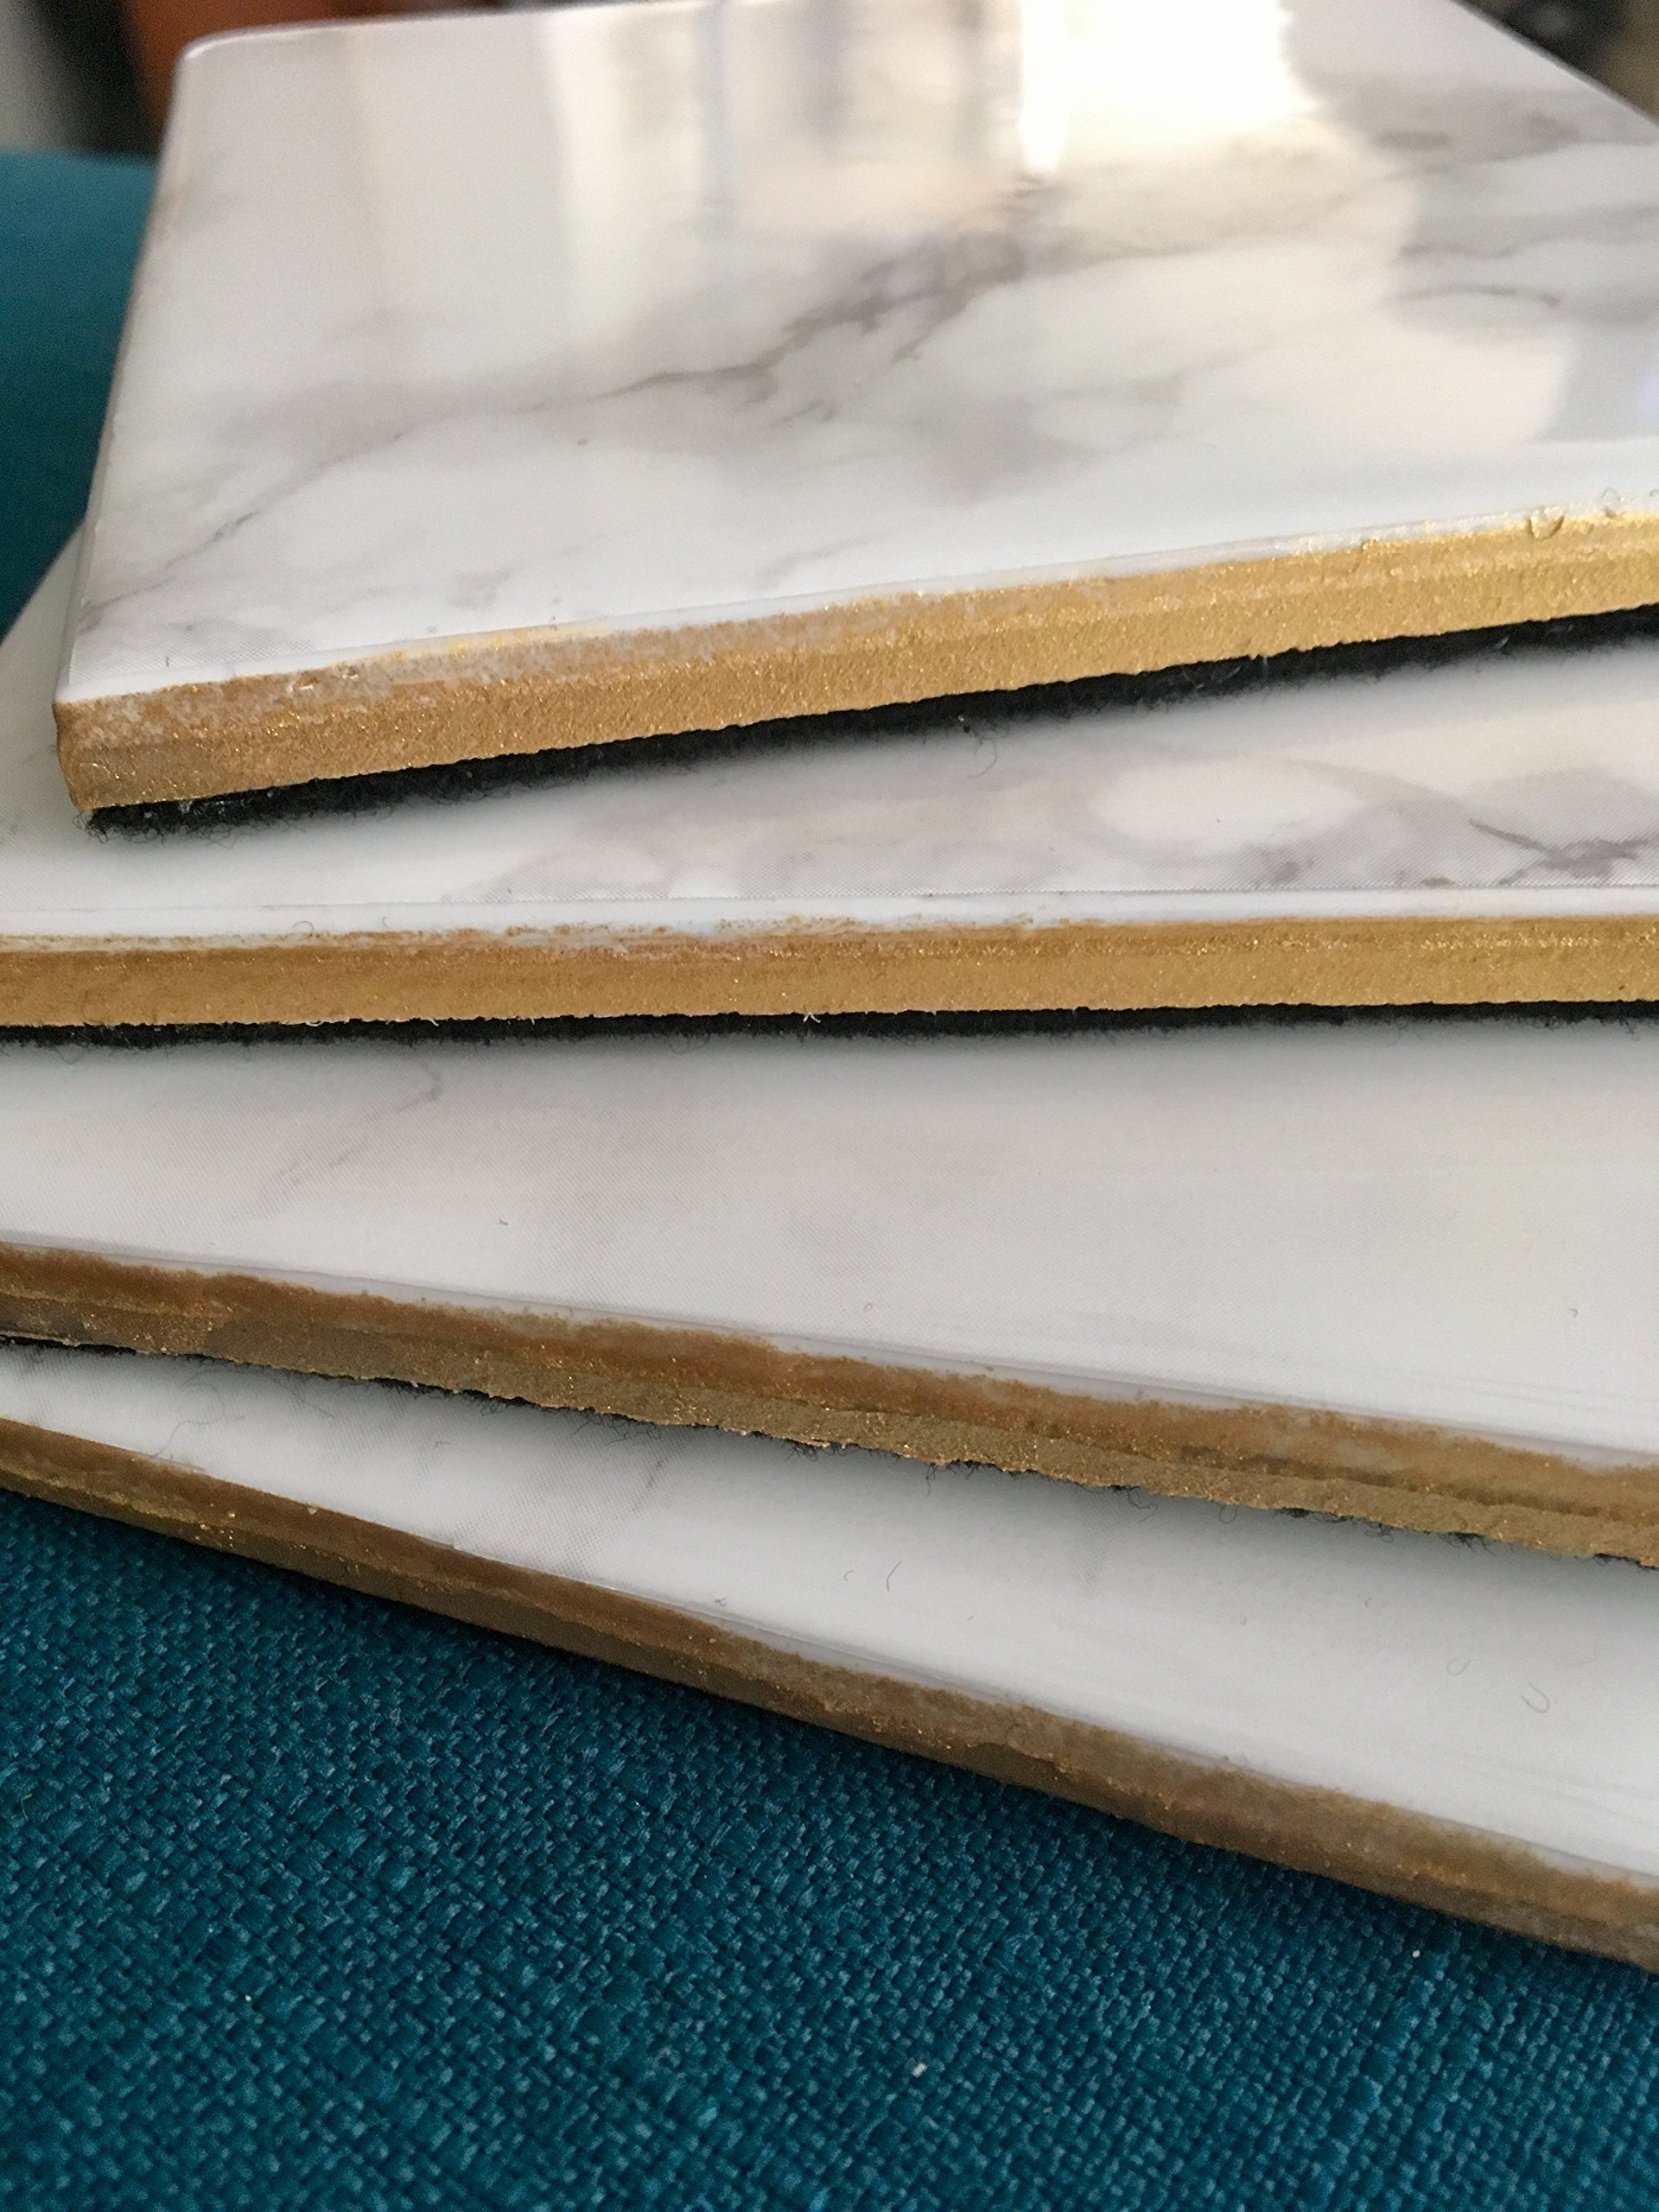 Marble and Gold Coasters Set of 4 - Minimalist Decor, Everyday Gift, Housewarming Gifts, Gift for Hostess, Birthday Gift, Coffee Tea Drinker, Wine Coasters by Lakay Treasures